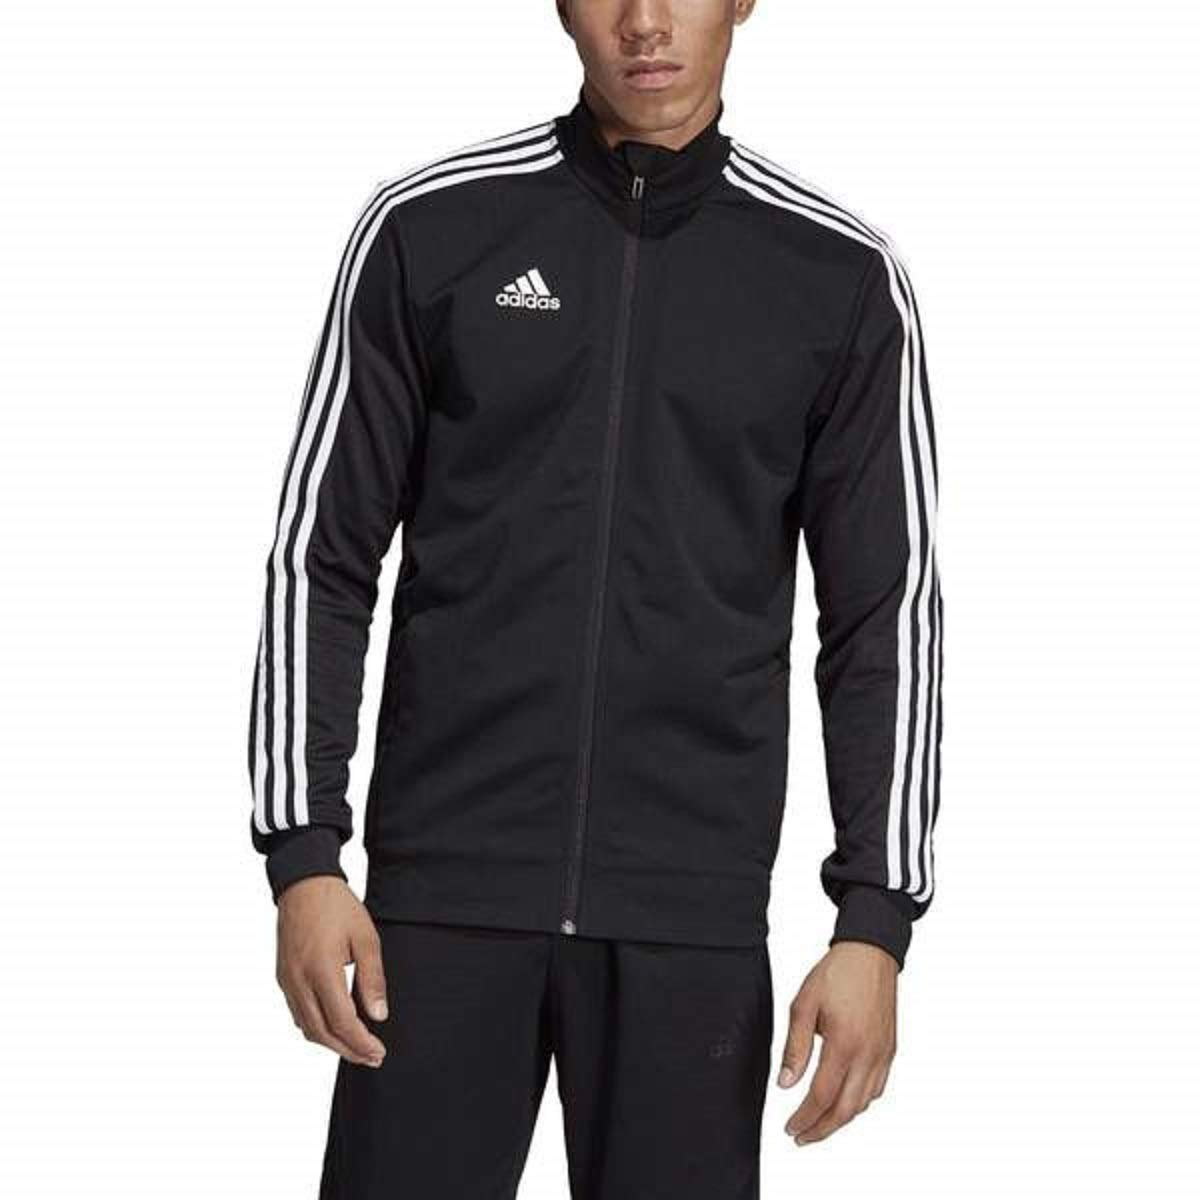 adidas Men's Tiro 19 Track Suit (L Jacket/S Pant, Black/White) by adidas